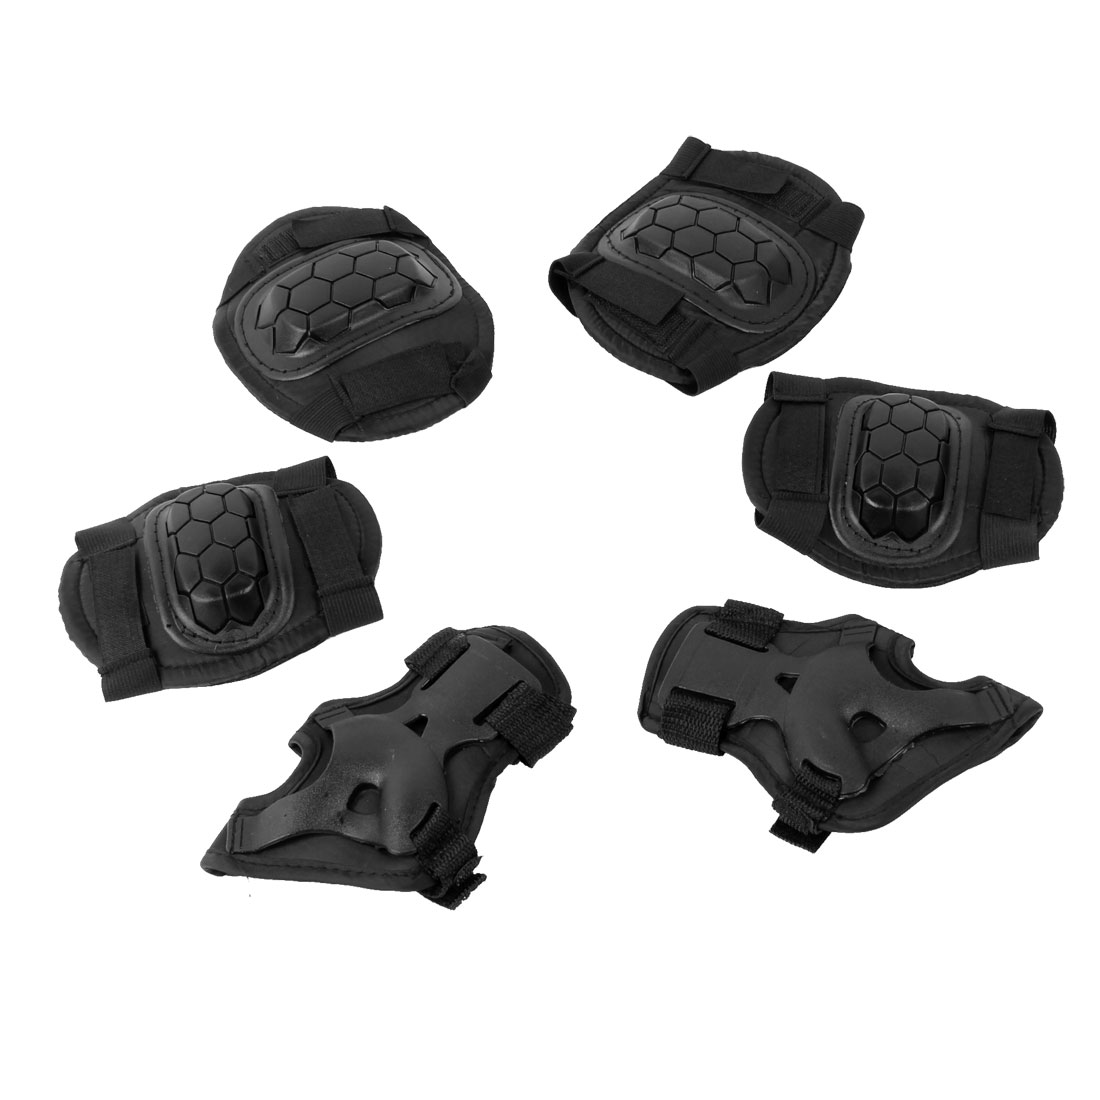 Unique Bargains Child Skating Skiing Knee Palm Elbow Support Pad Protector Brace 3 Pairs Black at Sears.com